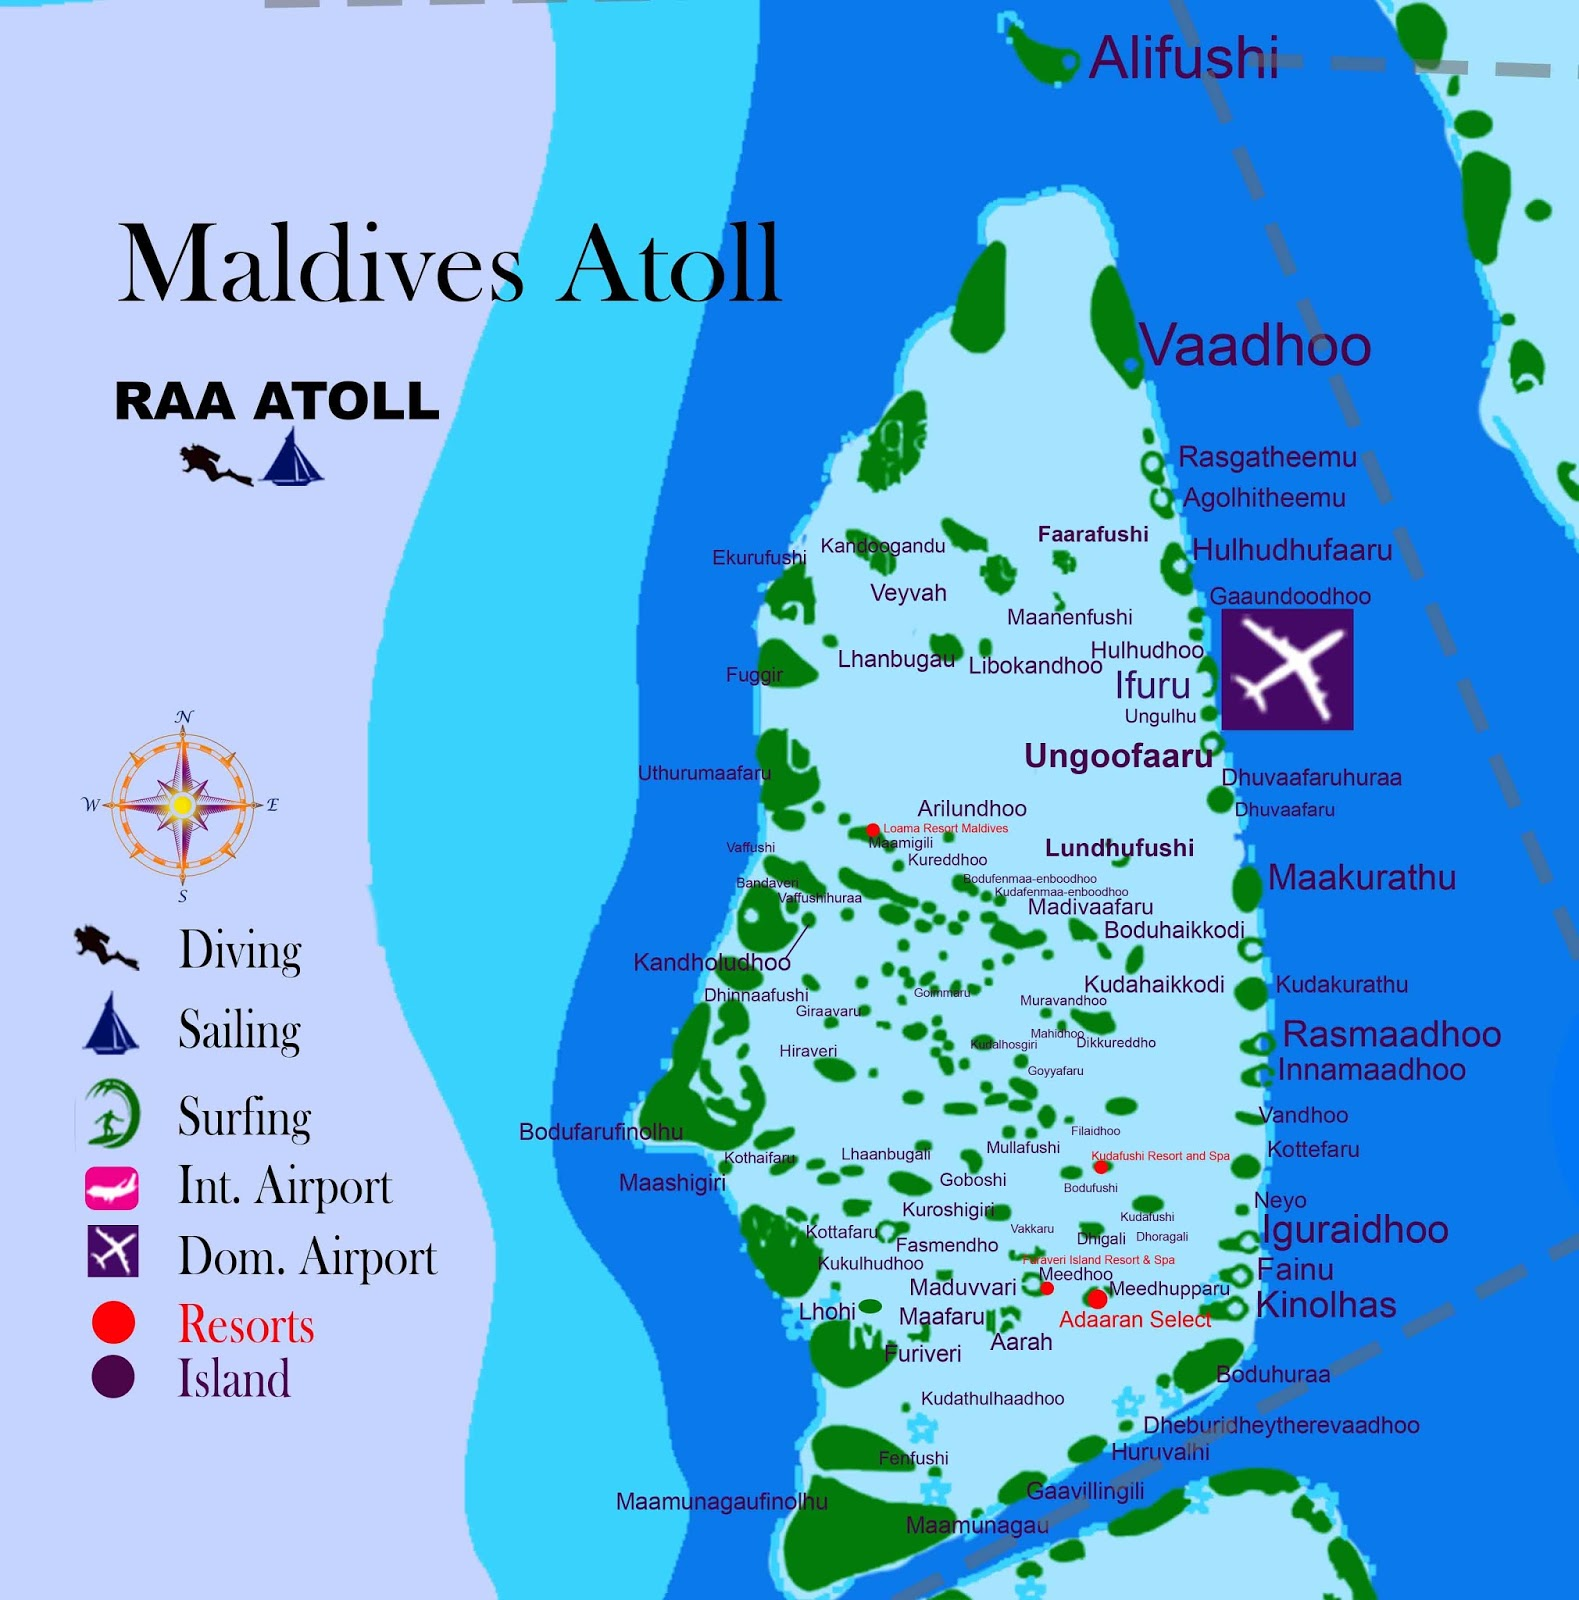 Maldives Atoll (RAA ATOLL) Island name, resorts and hotel ... on maldives map india, ayada maldives on map, seychelles resorts map, reunion resorts map, maldives world map, maldives location on map, honolulu resorts map, male maldives map, maldives map google, maldives airport map, turks and caicos islands resorts map, honduras resorts map, bermuda resorts map, maldives climate map, lankanfushi maldives map, falkland islands resorts map, the maldives map, maldives indian ocean map, tahiti resorts map, palawan resorts map,